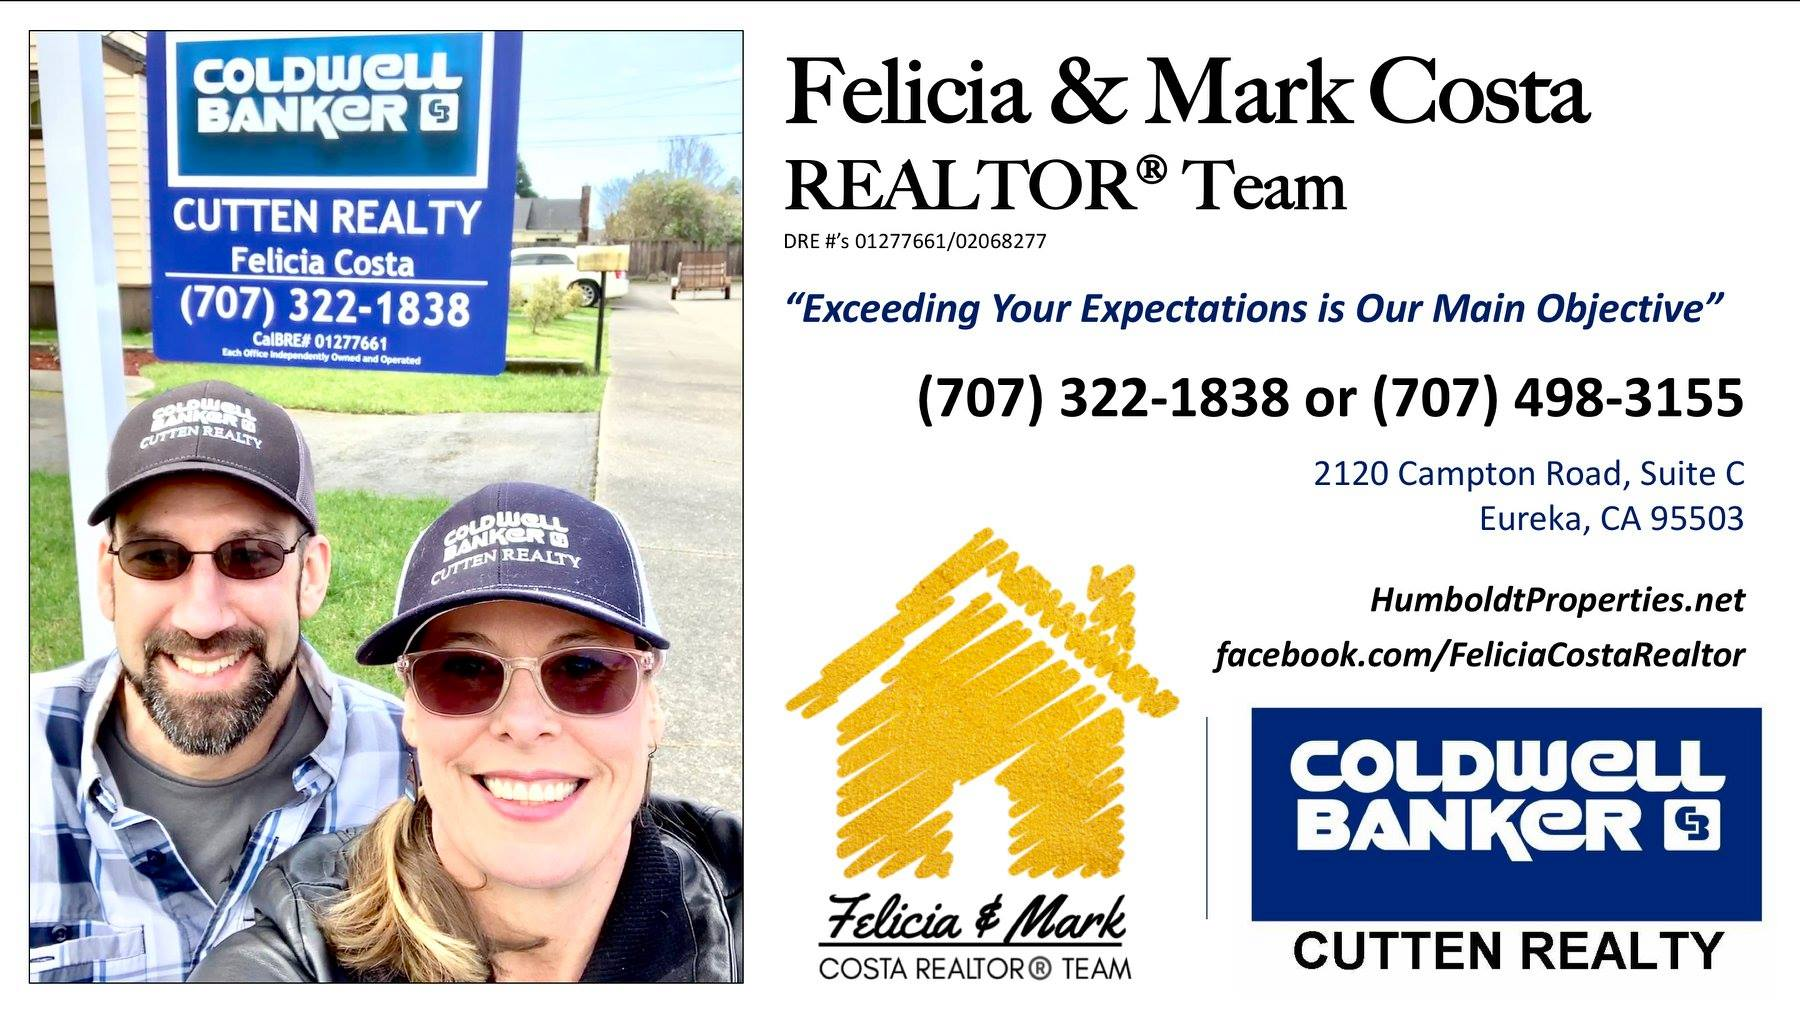 Felicia and Mark Costa Realtor Team Ad